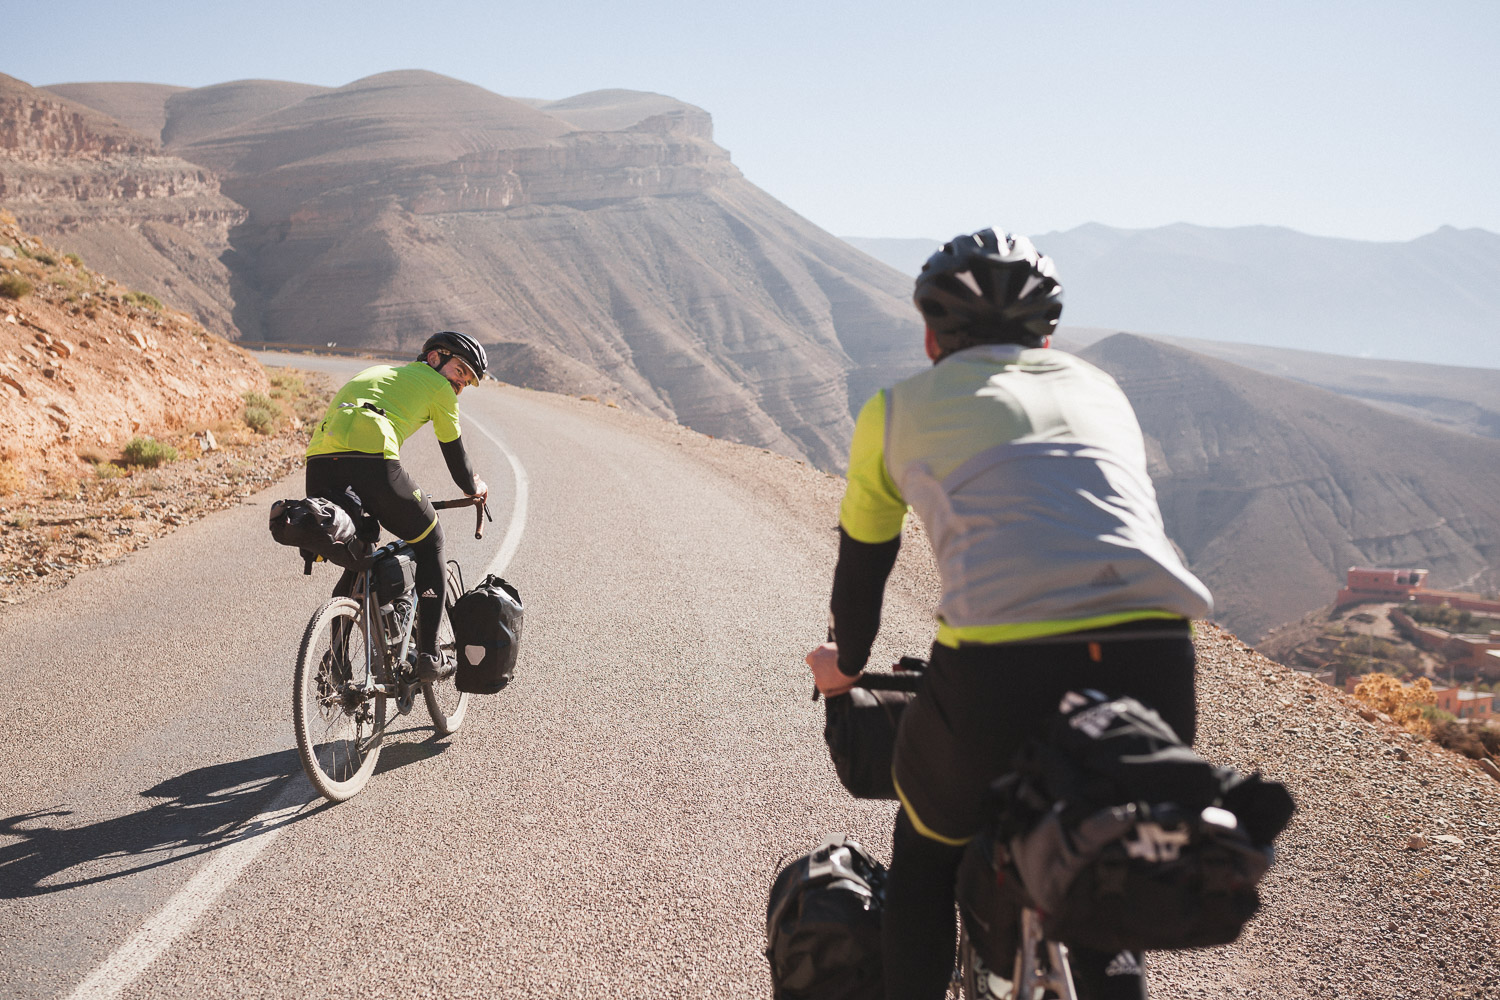 8bar bikes adventures morocco gravel 20151213 0093 bearbeitet - 8bar Adventures - Morocco - High Atlas - Part 2/2